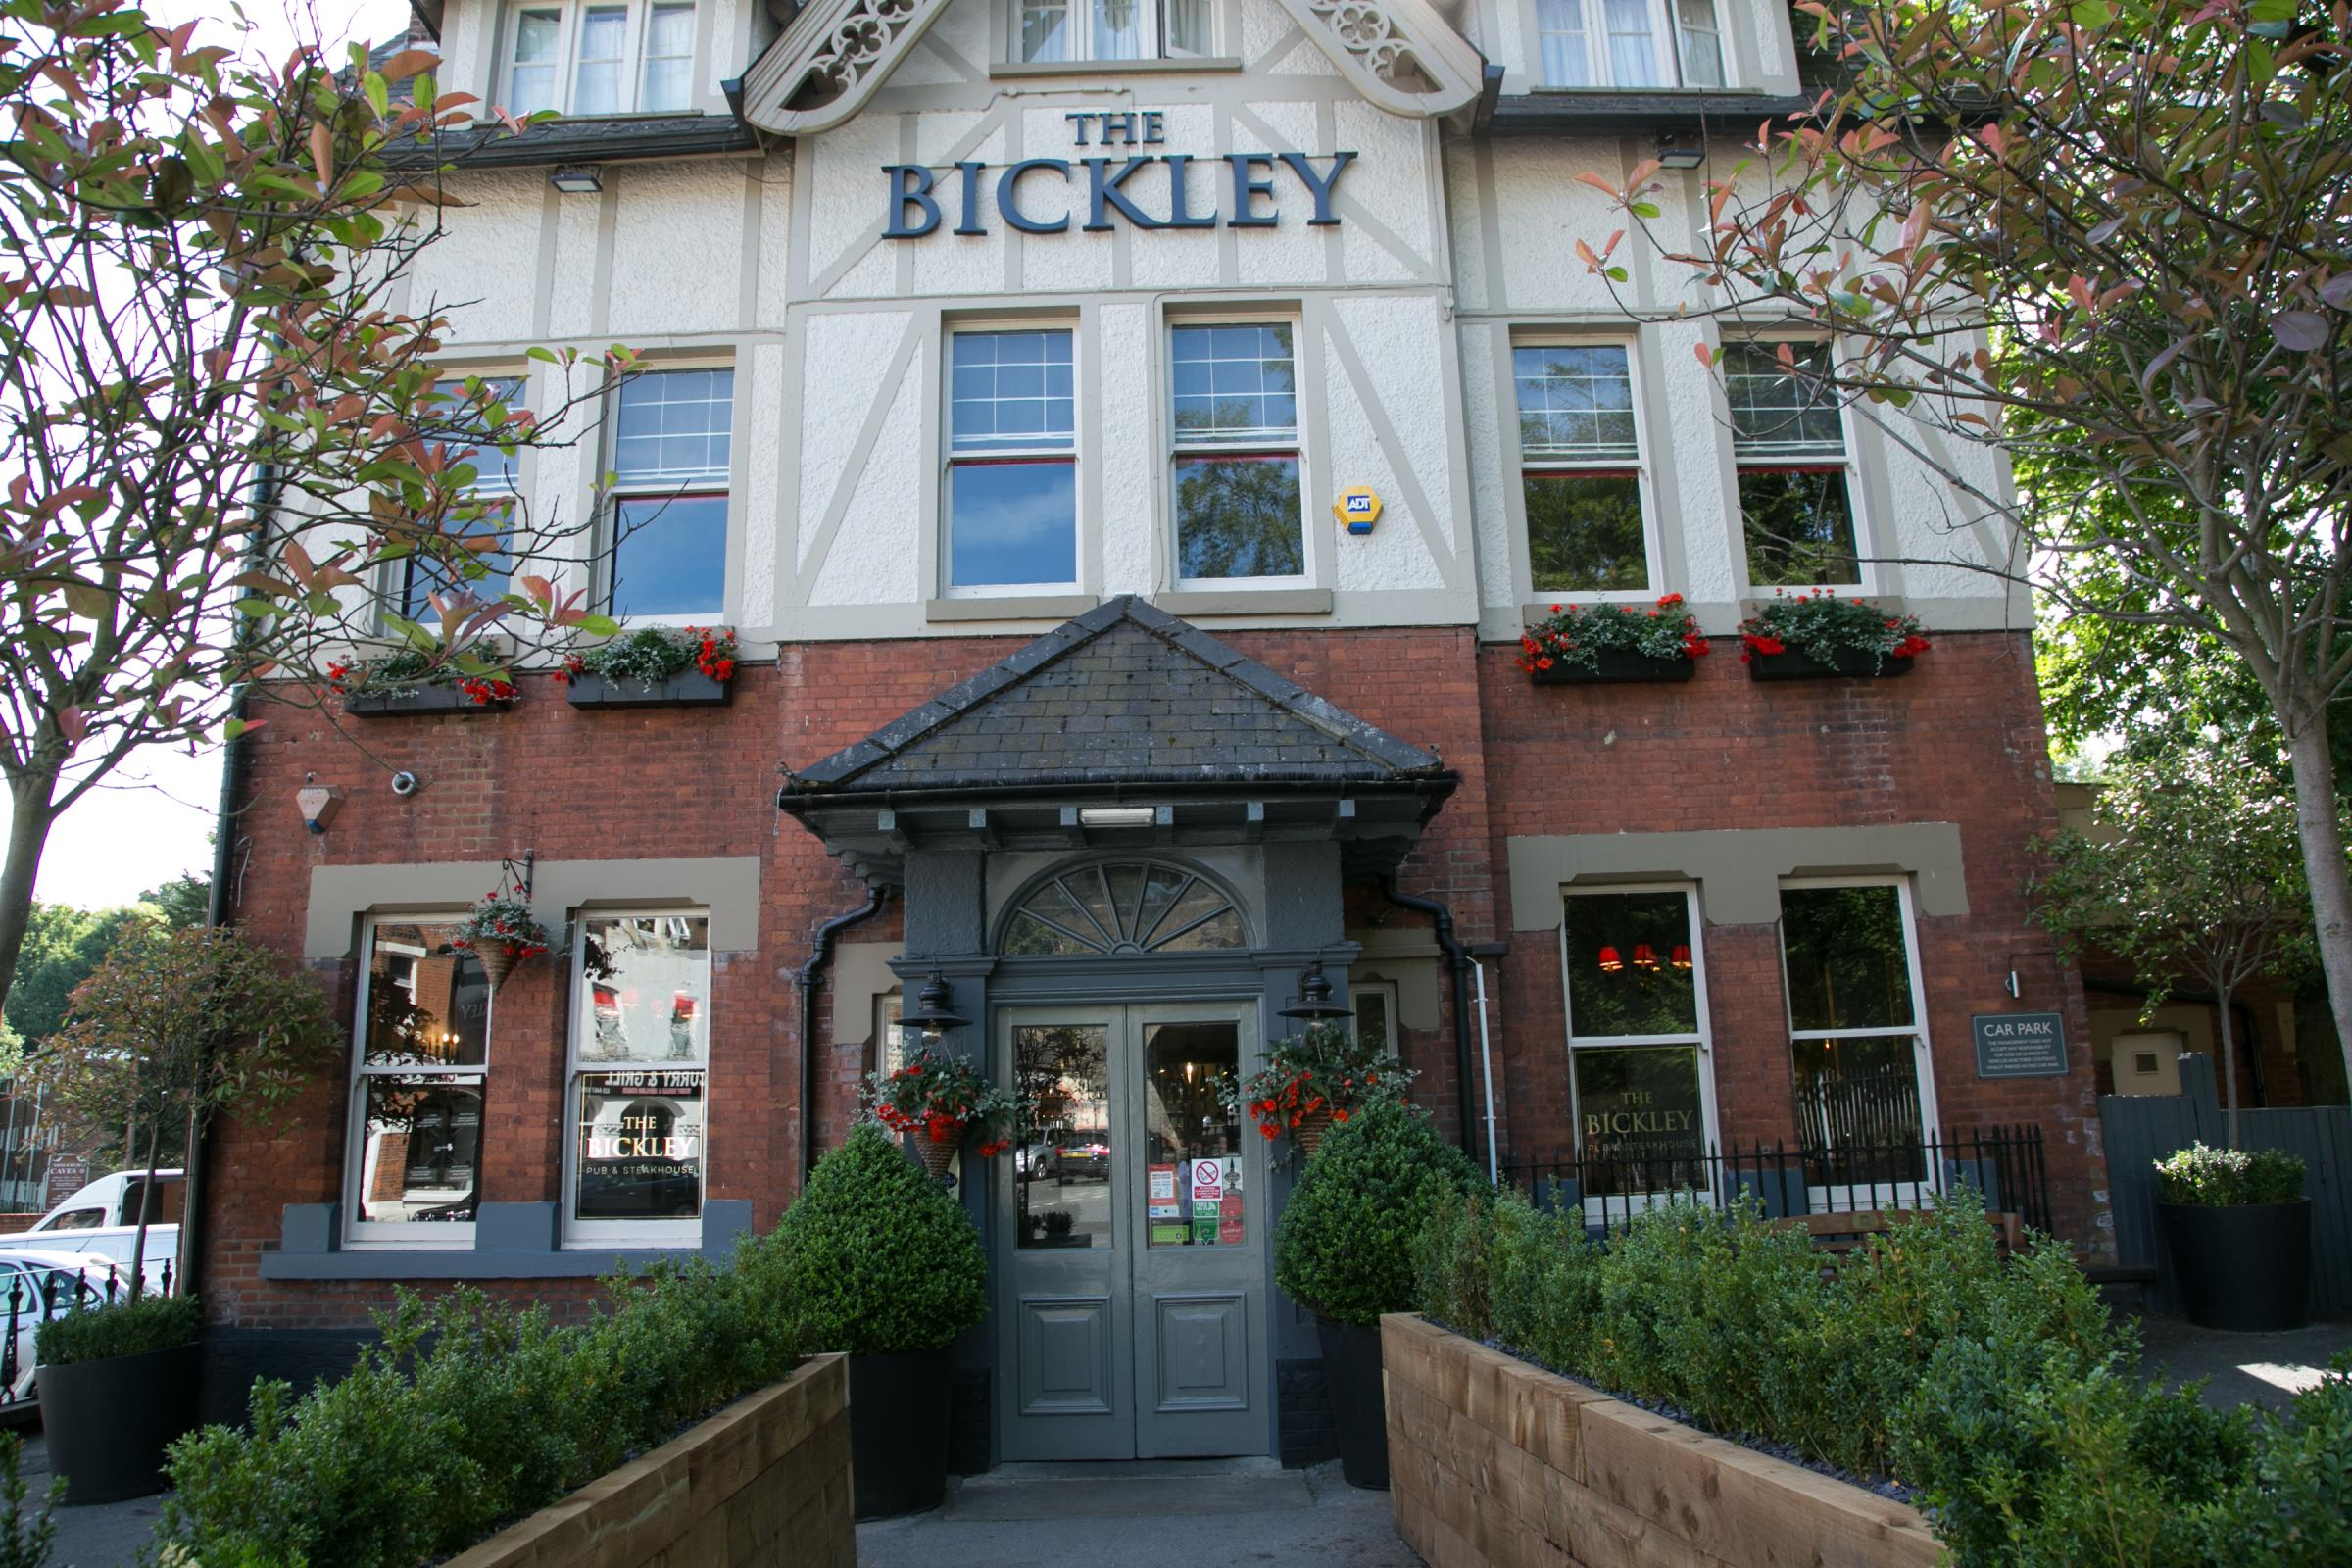 Plastic straws will not be used in the Bickley Pub and Steak House